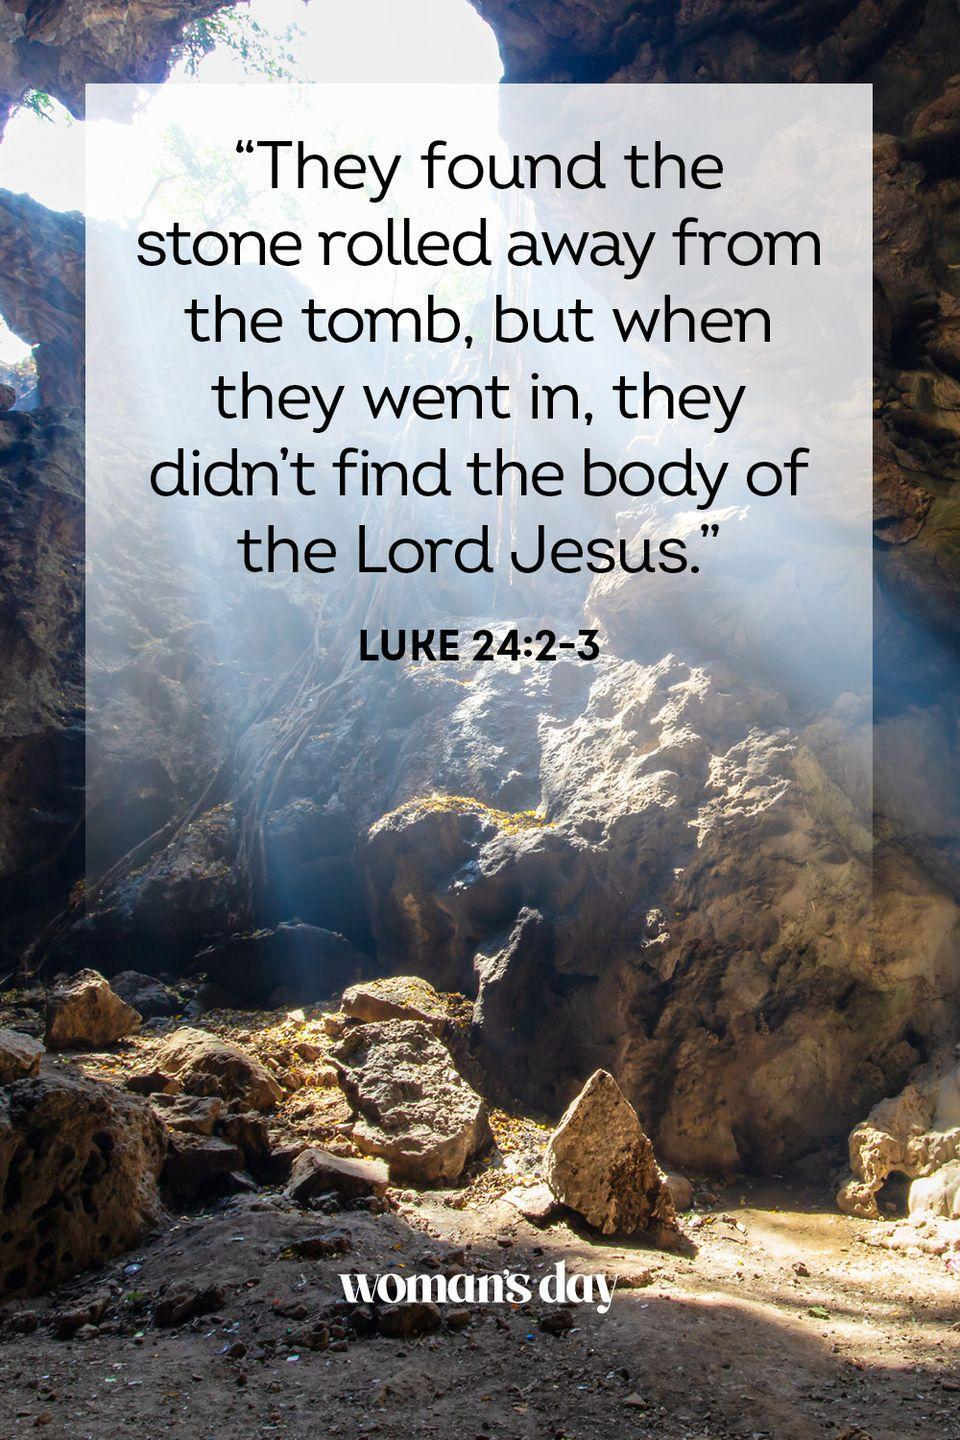 "<p>""They found the stone rolled away from the tomb, but when they went in, they didn't find the body of the Lord Jesus."" — Luke 24:2-3</p>"